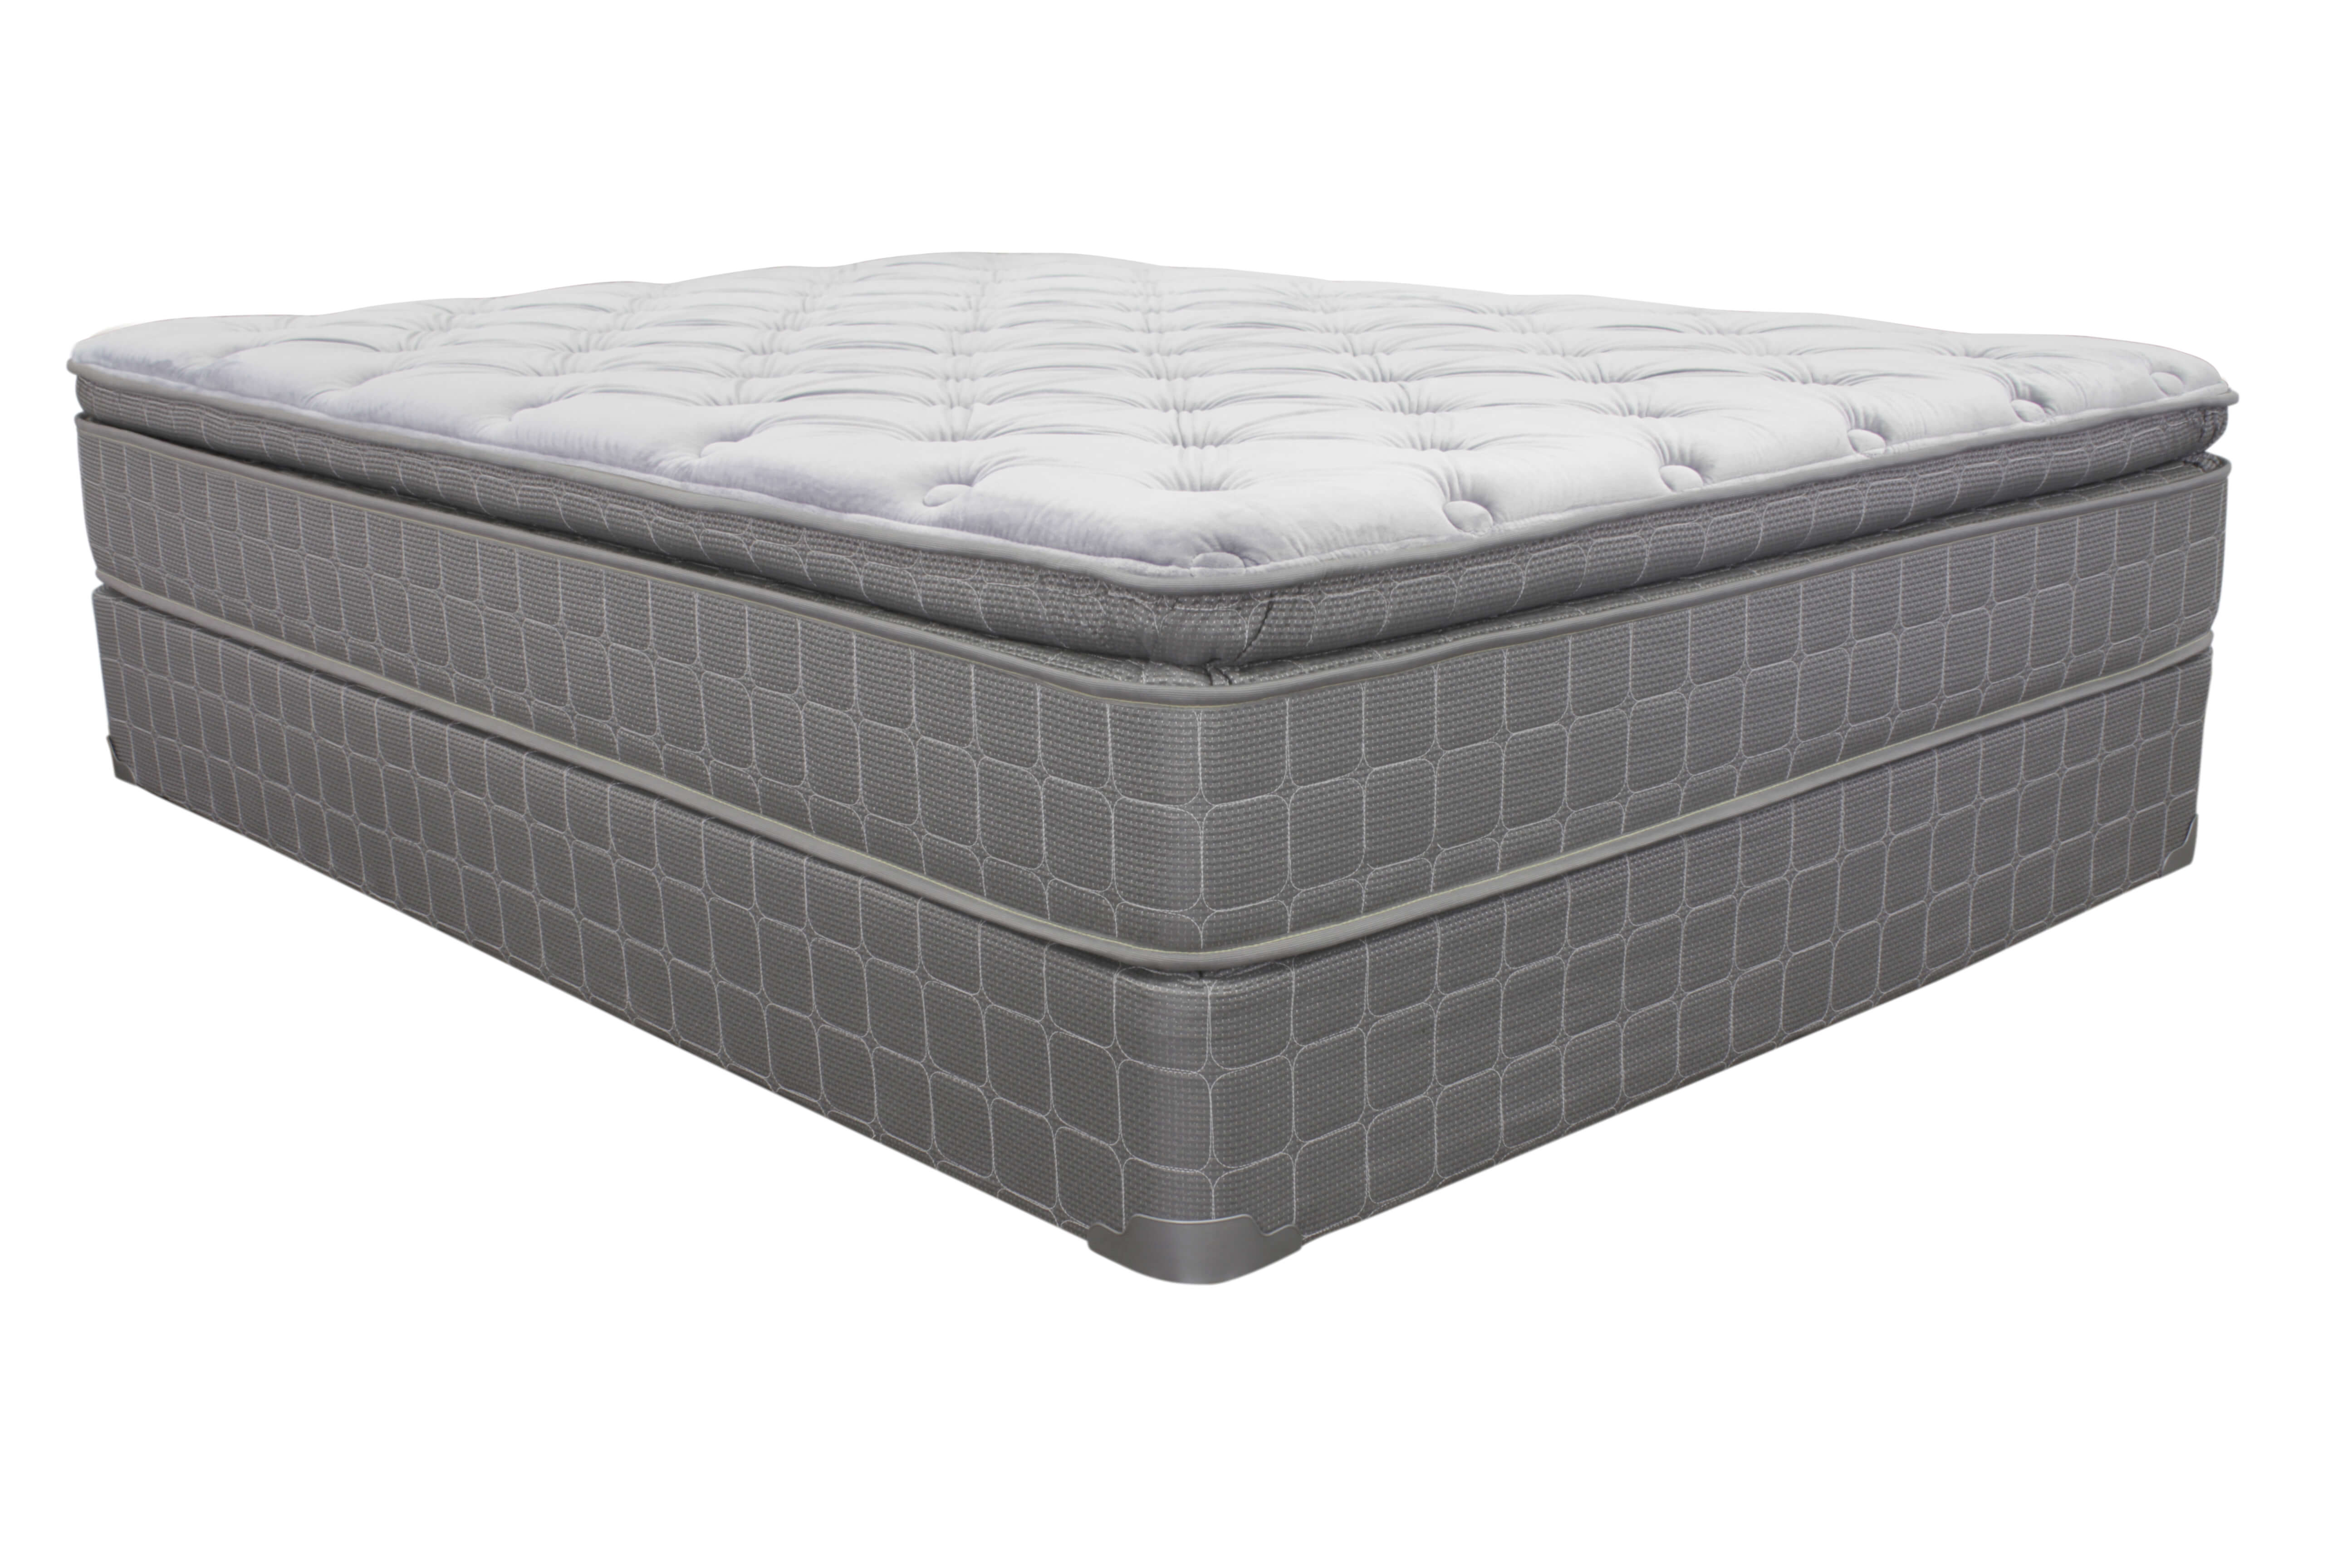 Bramwell Teddy Bear Pillow Top Mattress Mattresses